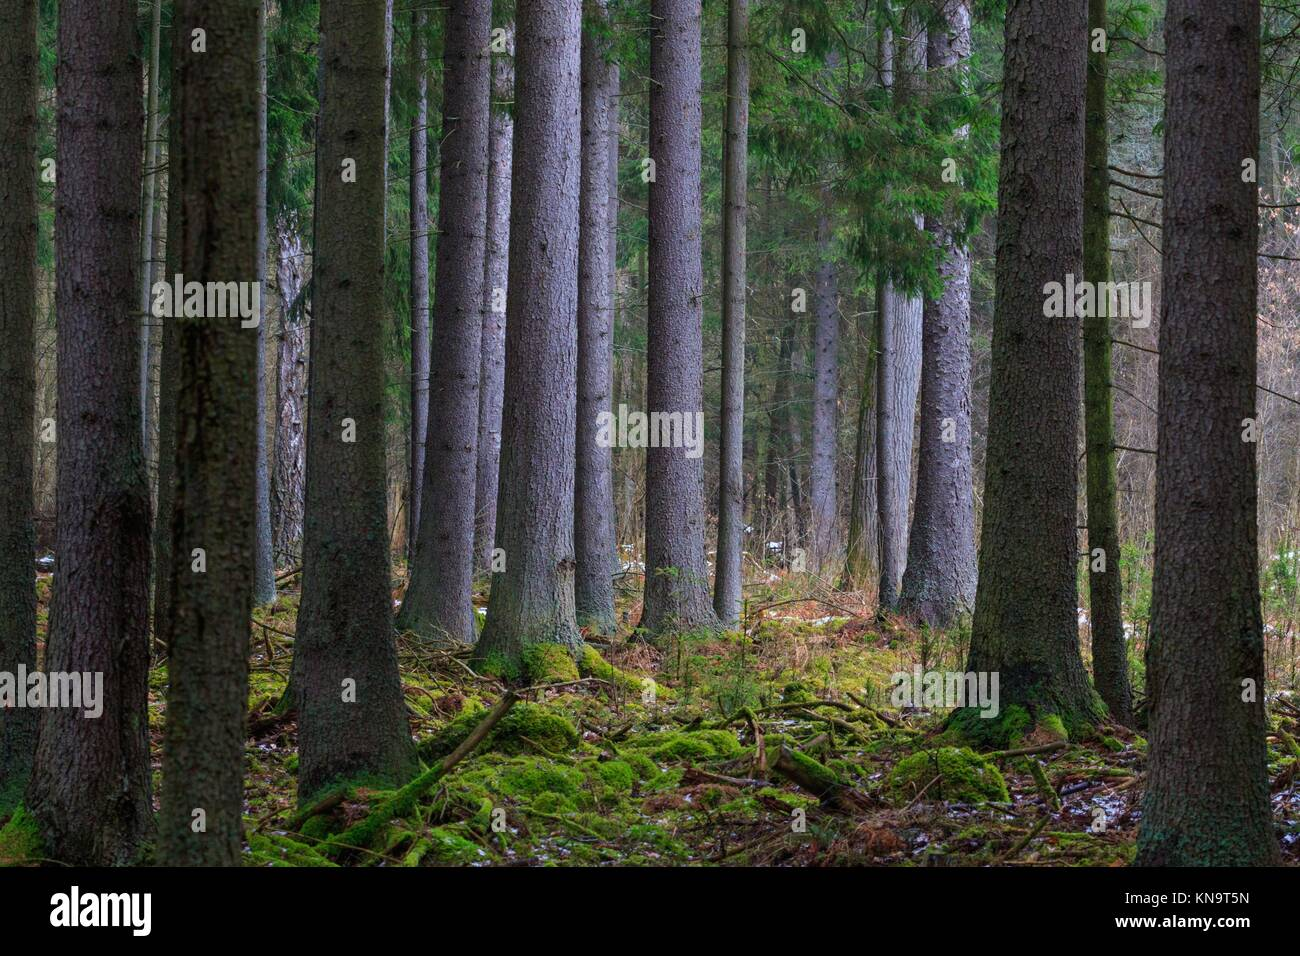 Coniferous stand of spruces in winter cloudy morning, Bialowieza Forest, Poland, Europe. - Stock Image